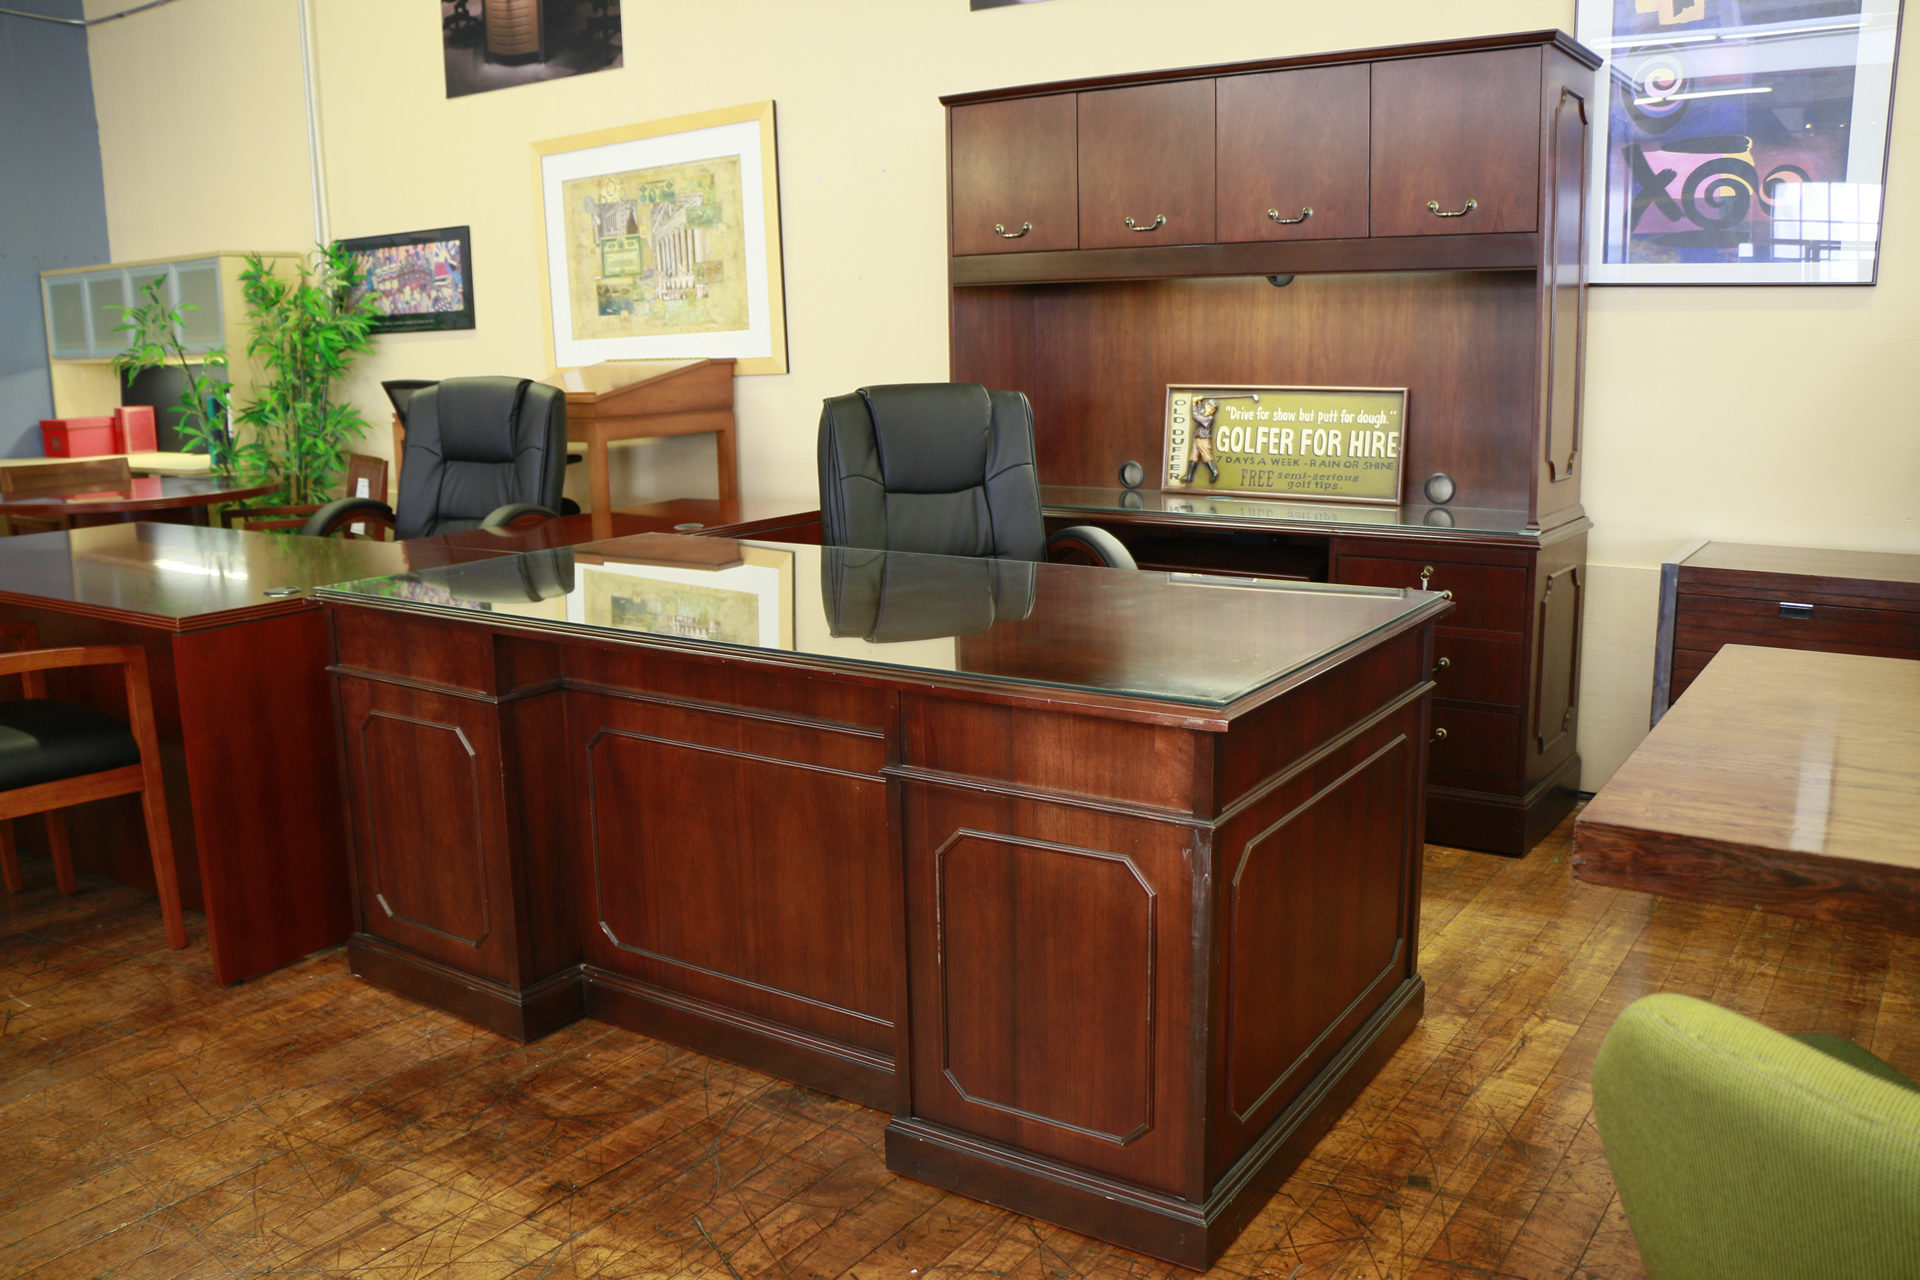 peartreeofficefurniture_peartreeofficefurniture_mg_3676.jpg